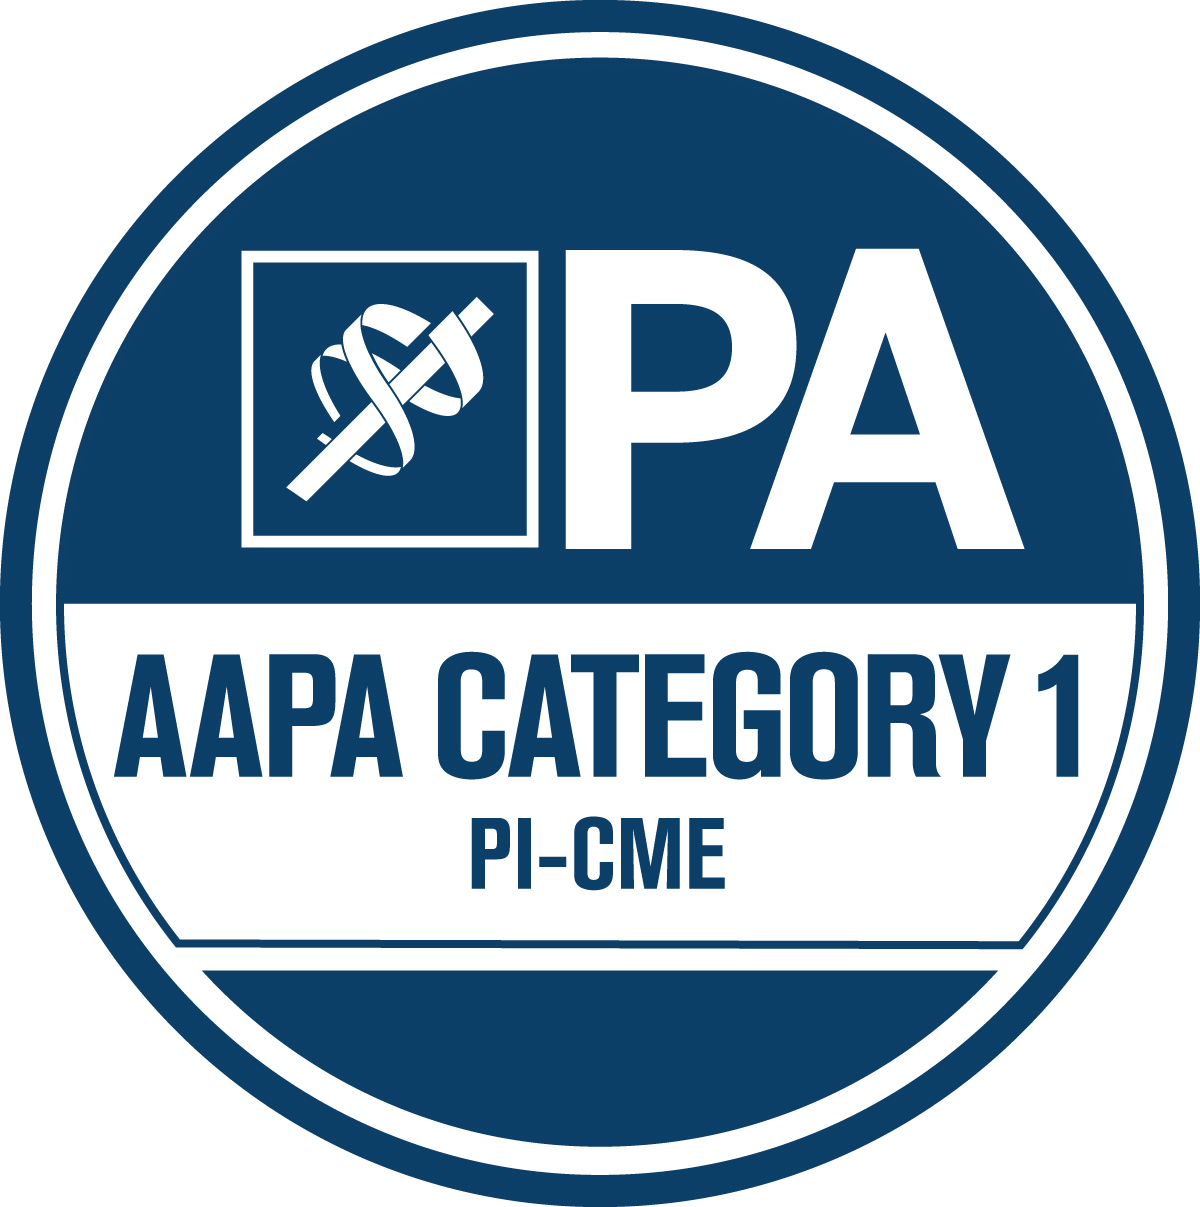 Earn AAPA Category 1 Self-Assessment CME credits